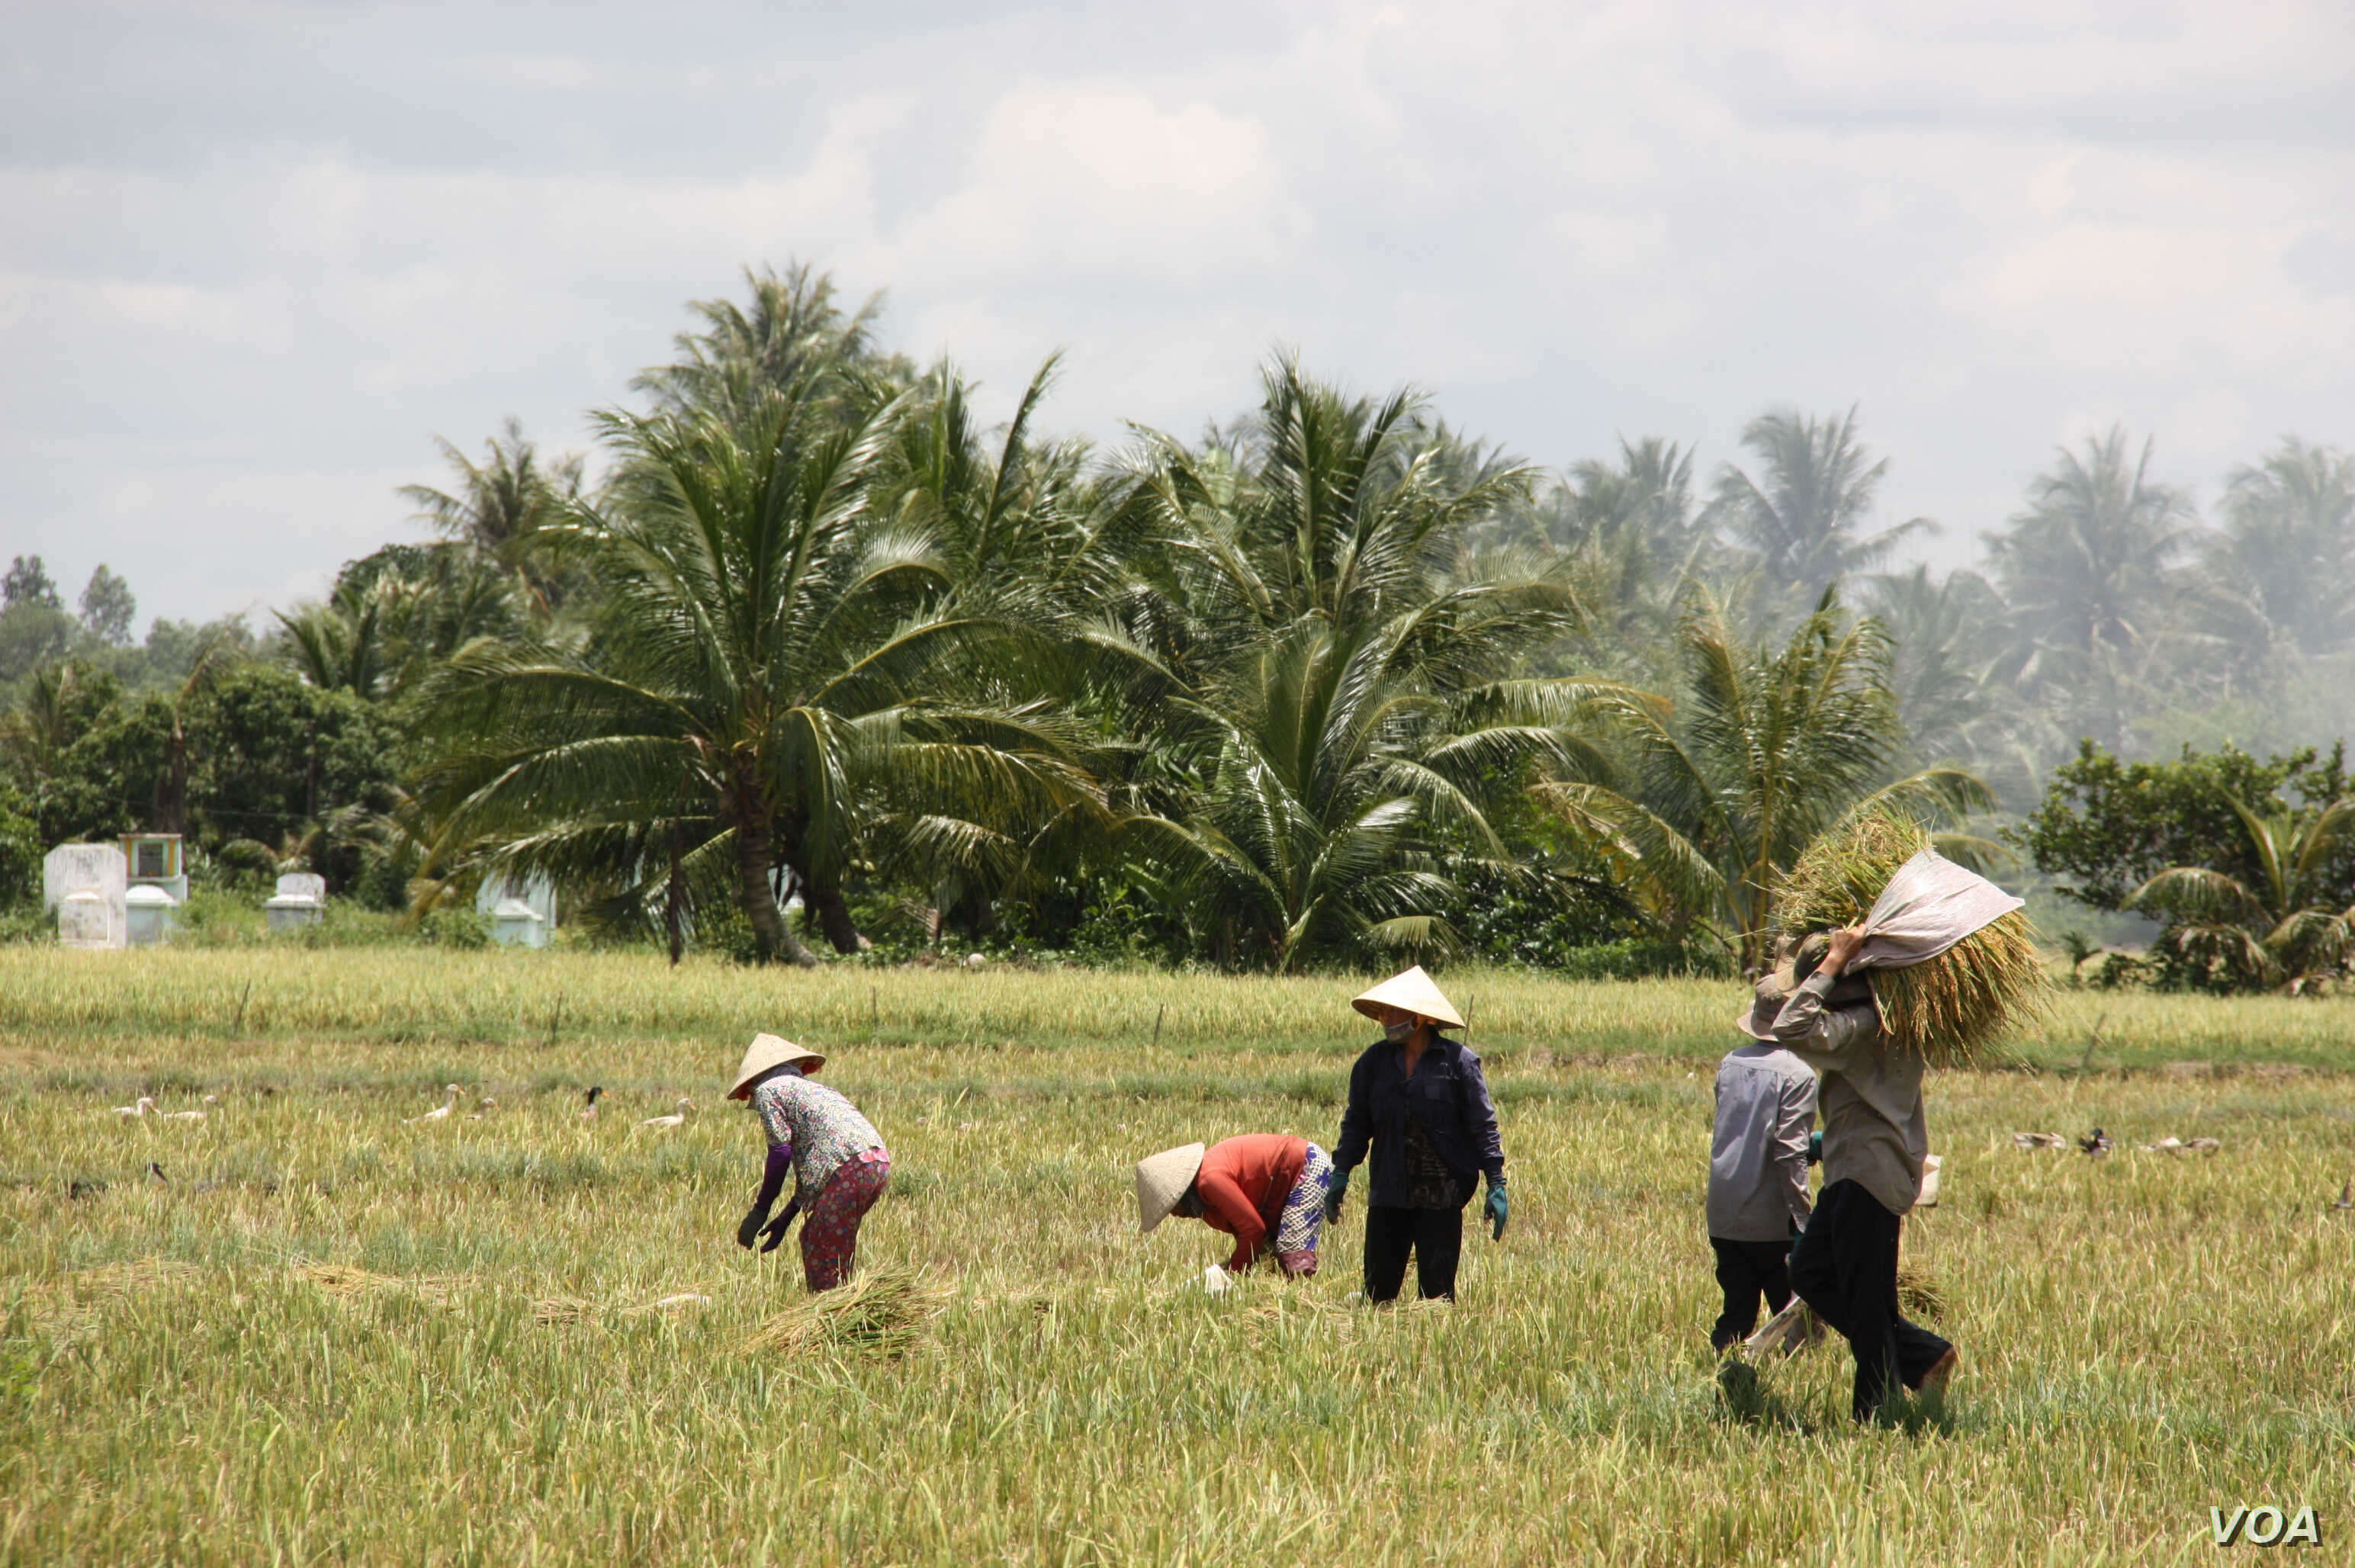 Laborers gather rice grains for stacking, Tien Giang, Vietnam, September 14, 2012. (D. Schearf/VOA)